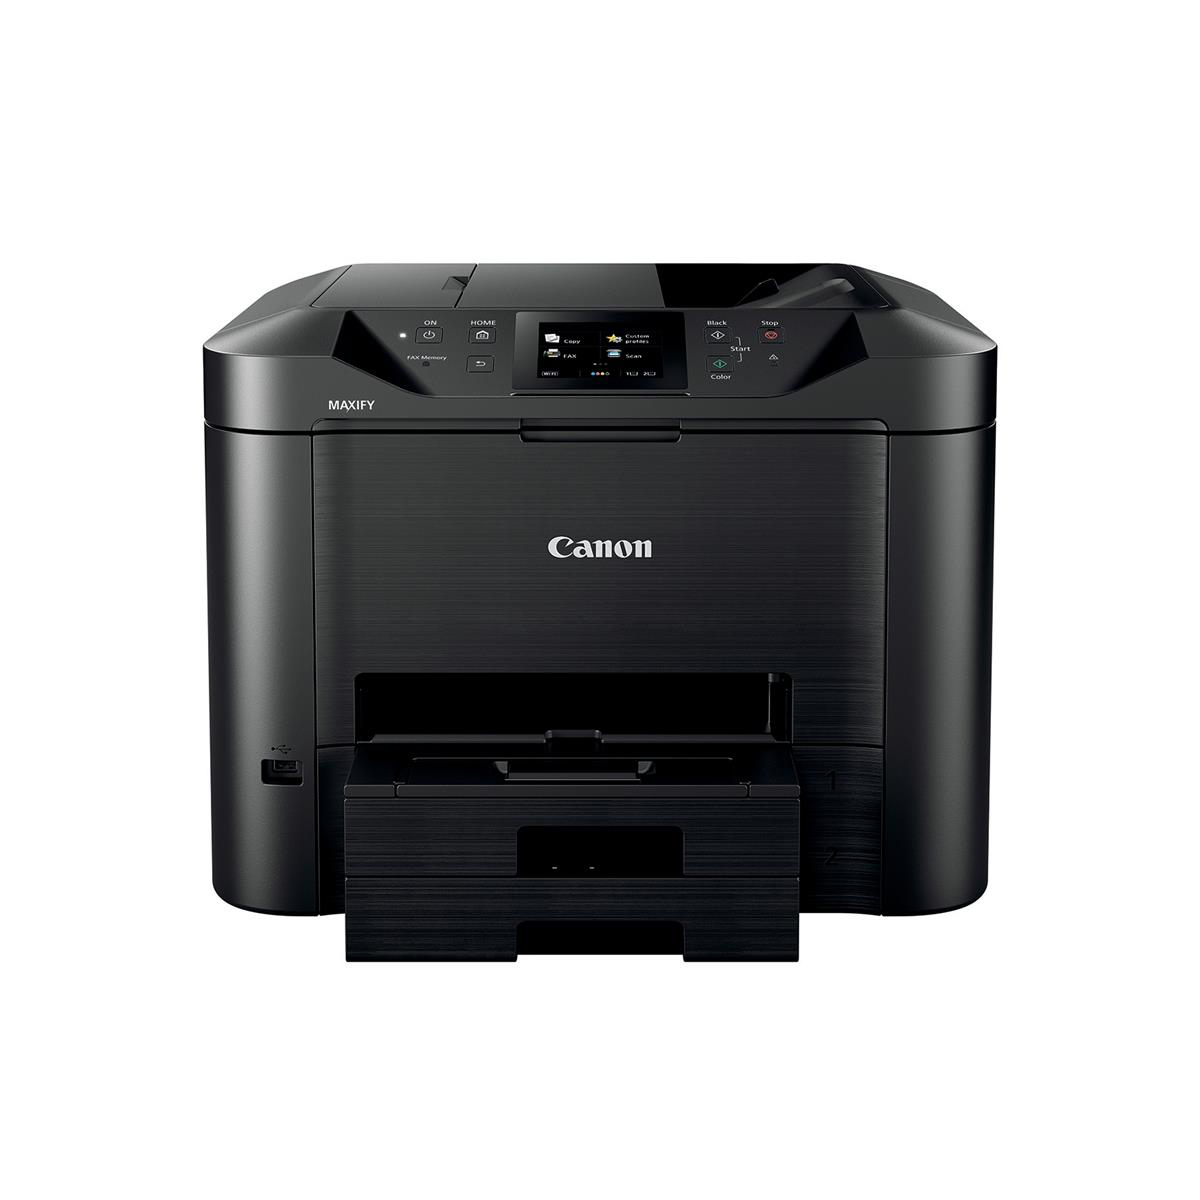 Canon MAXIFY MB5455 A4 Colour Inkjet Multifunction Printer Ref 0971C028AA